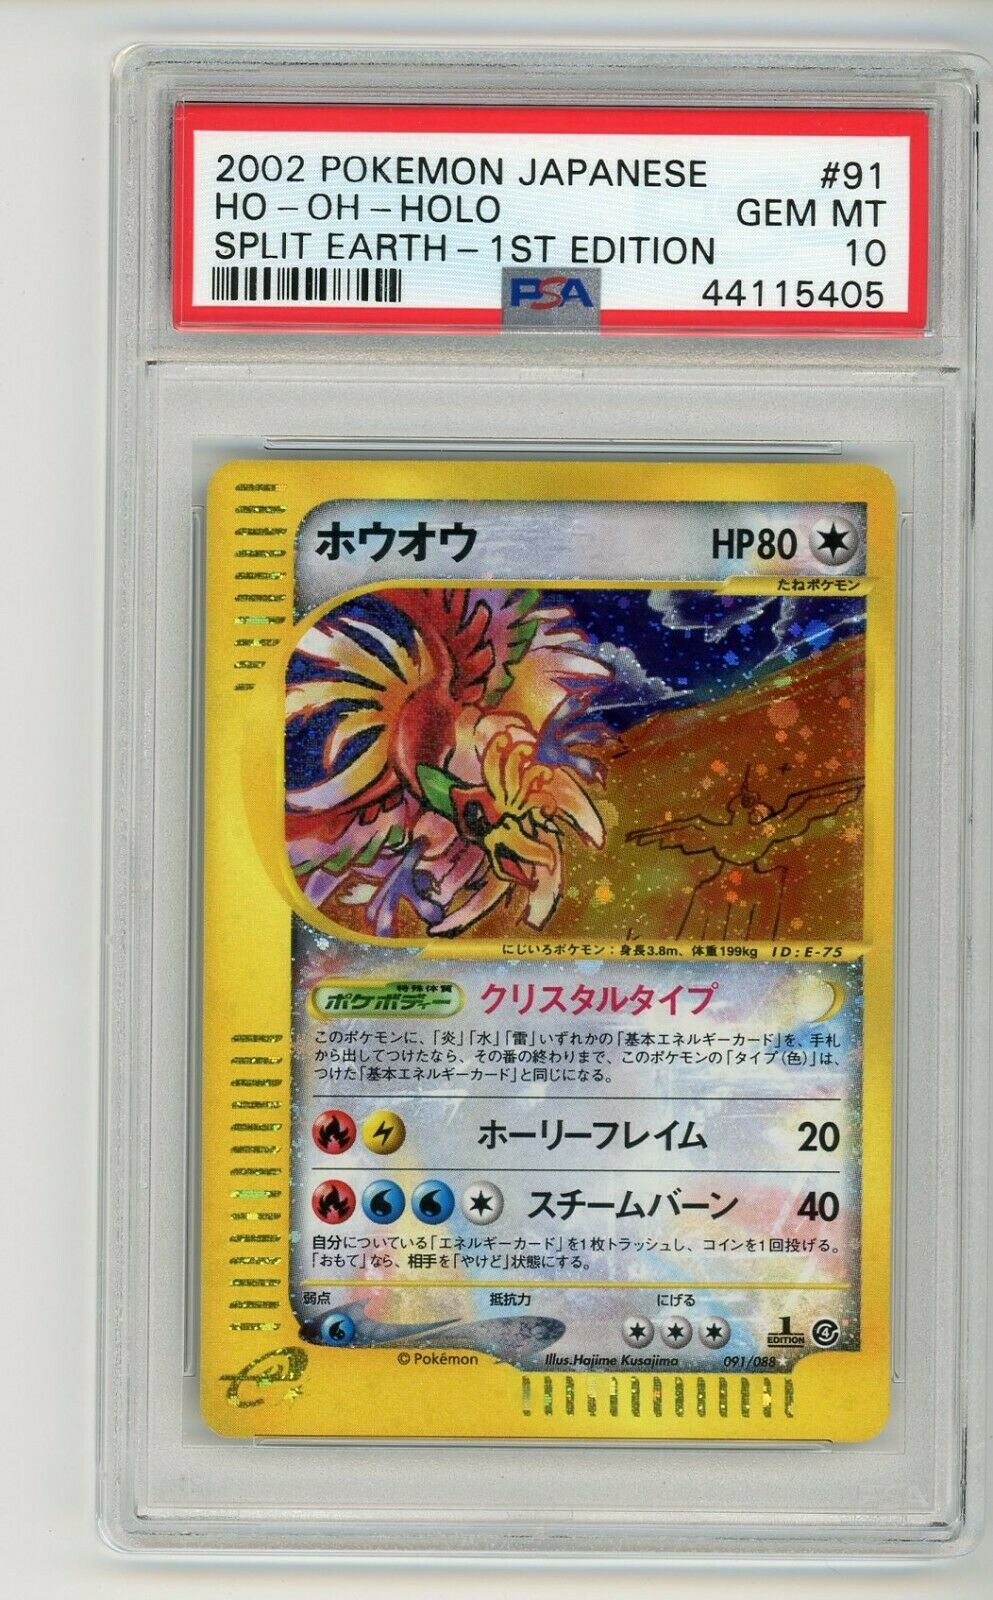 PSA 10 POKEMON JAPANESE CRYSTAL HOOH 091 CARD 2002 1ST ED ESERIES AQUAPOLIS